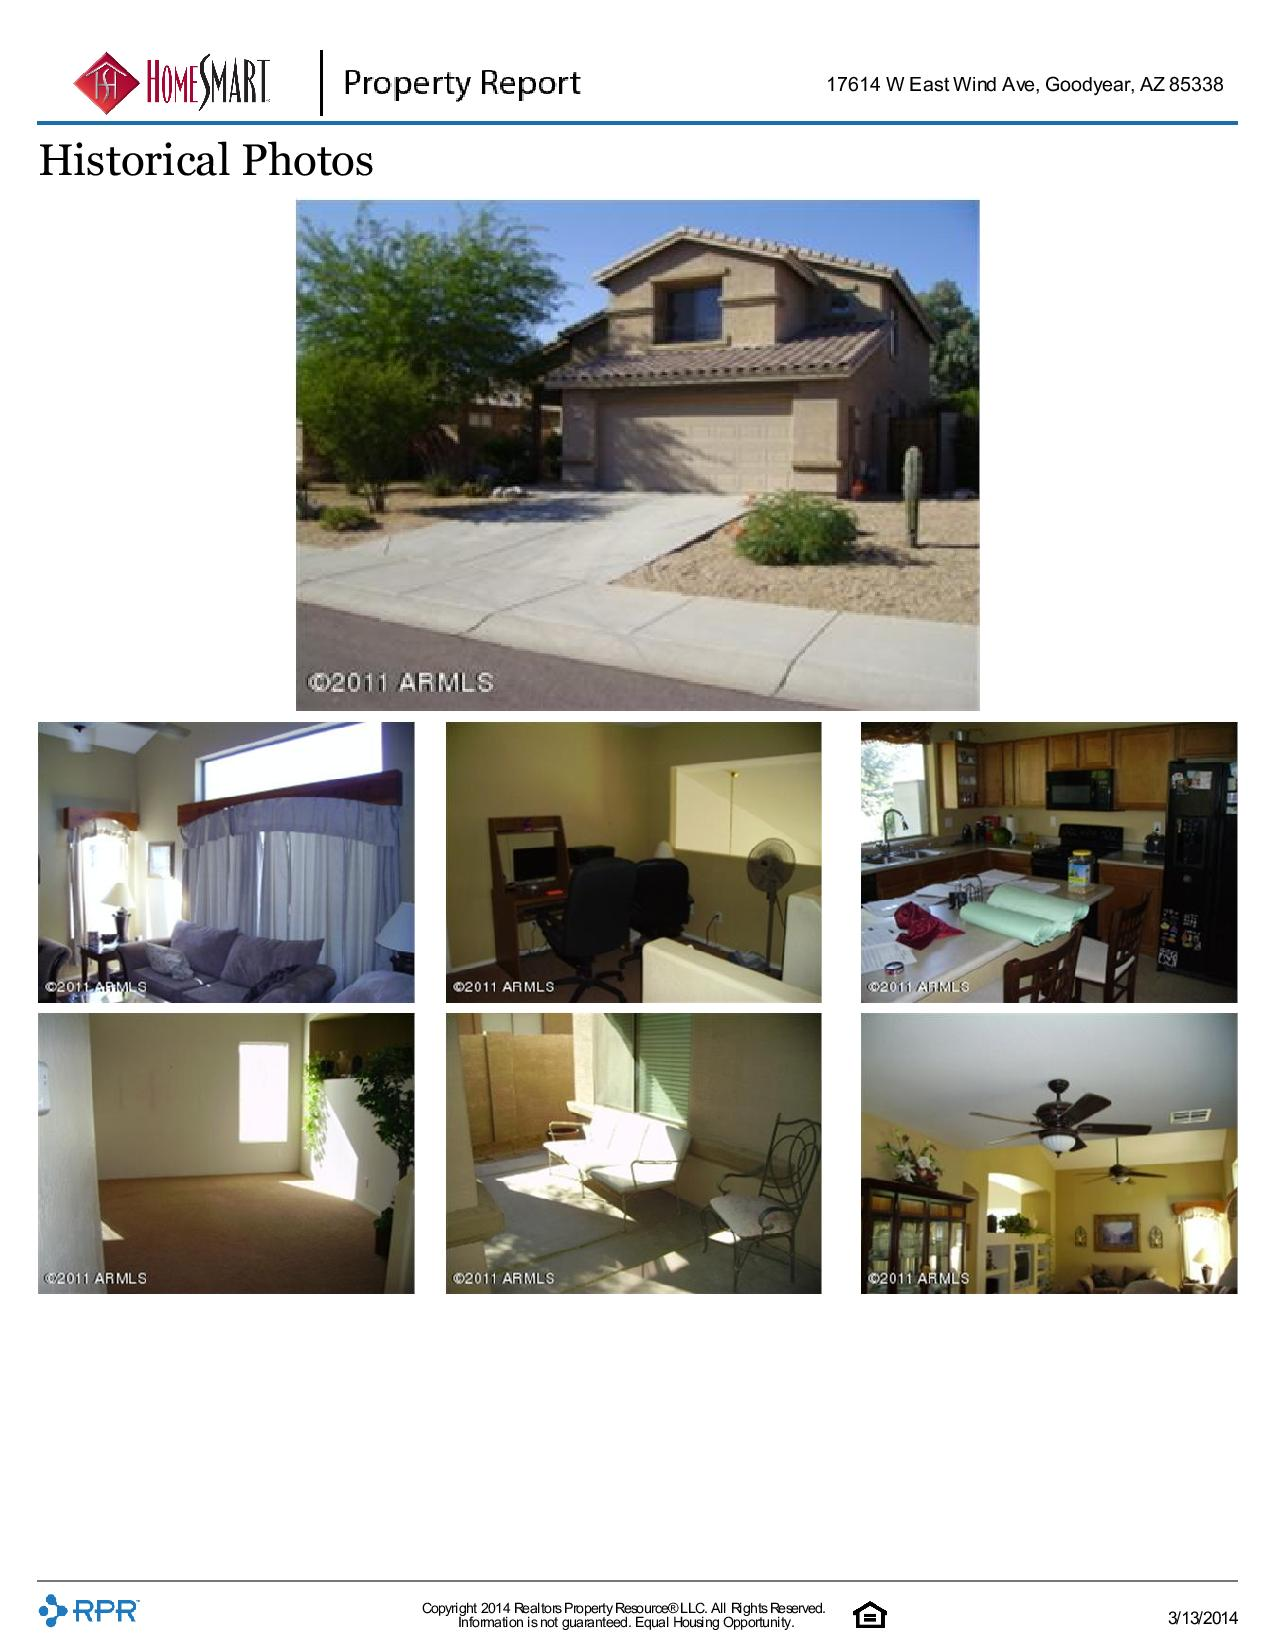 17614-W-East-Wind-Ave-Goodyear-AZ-85338-page-007